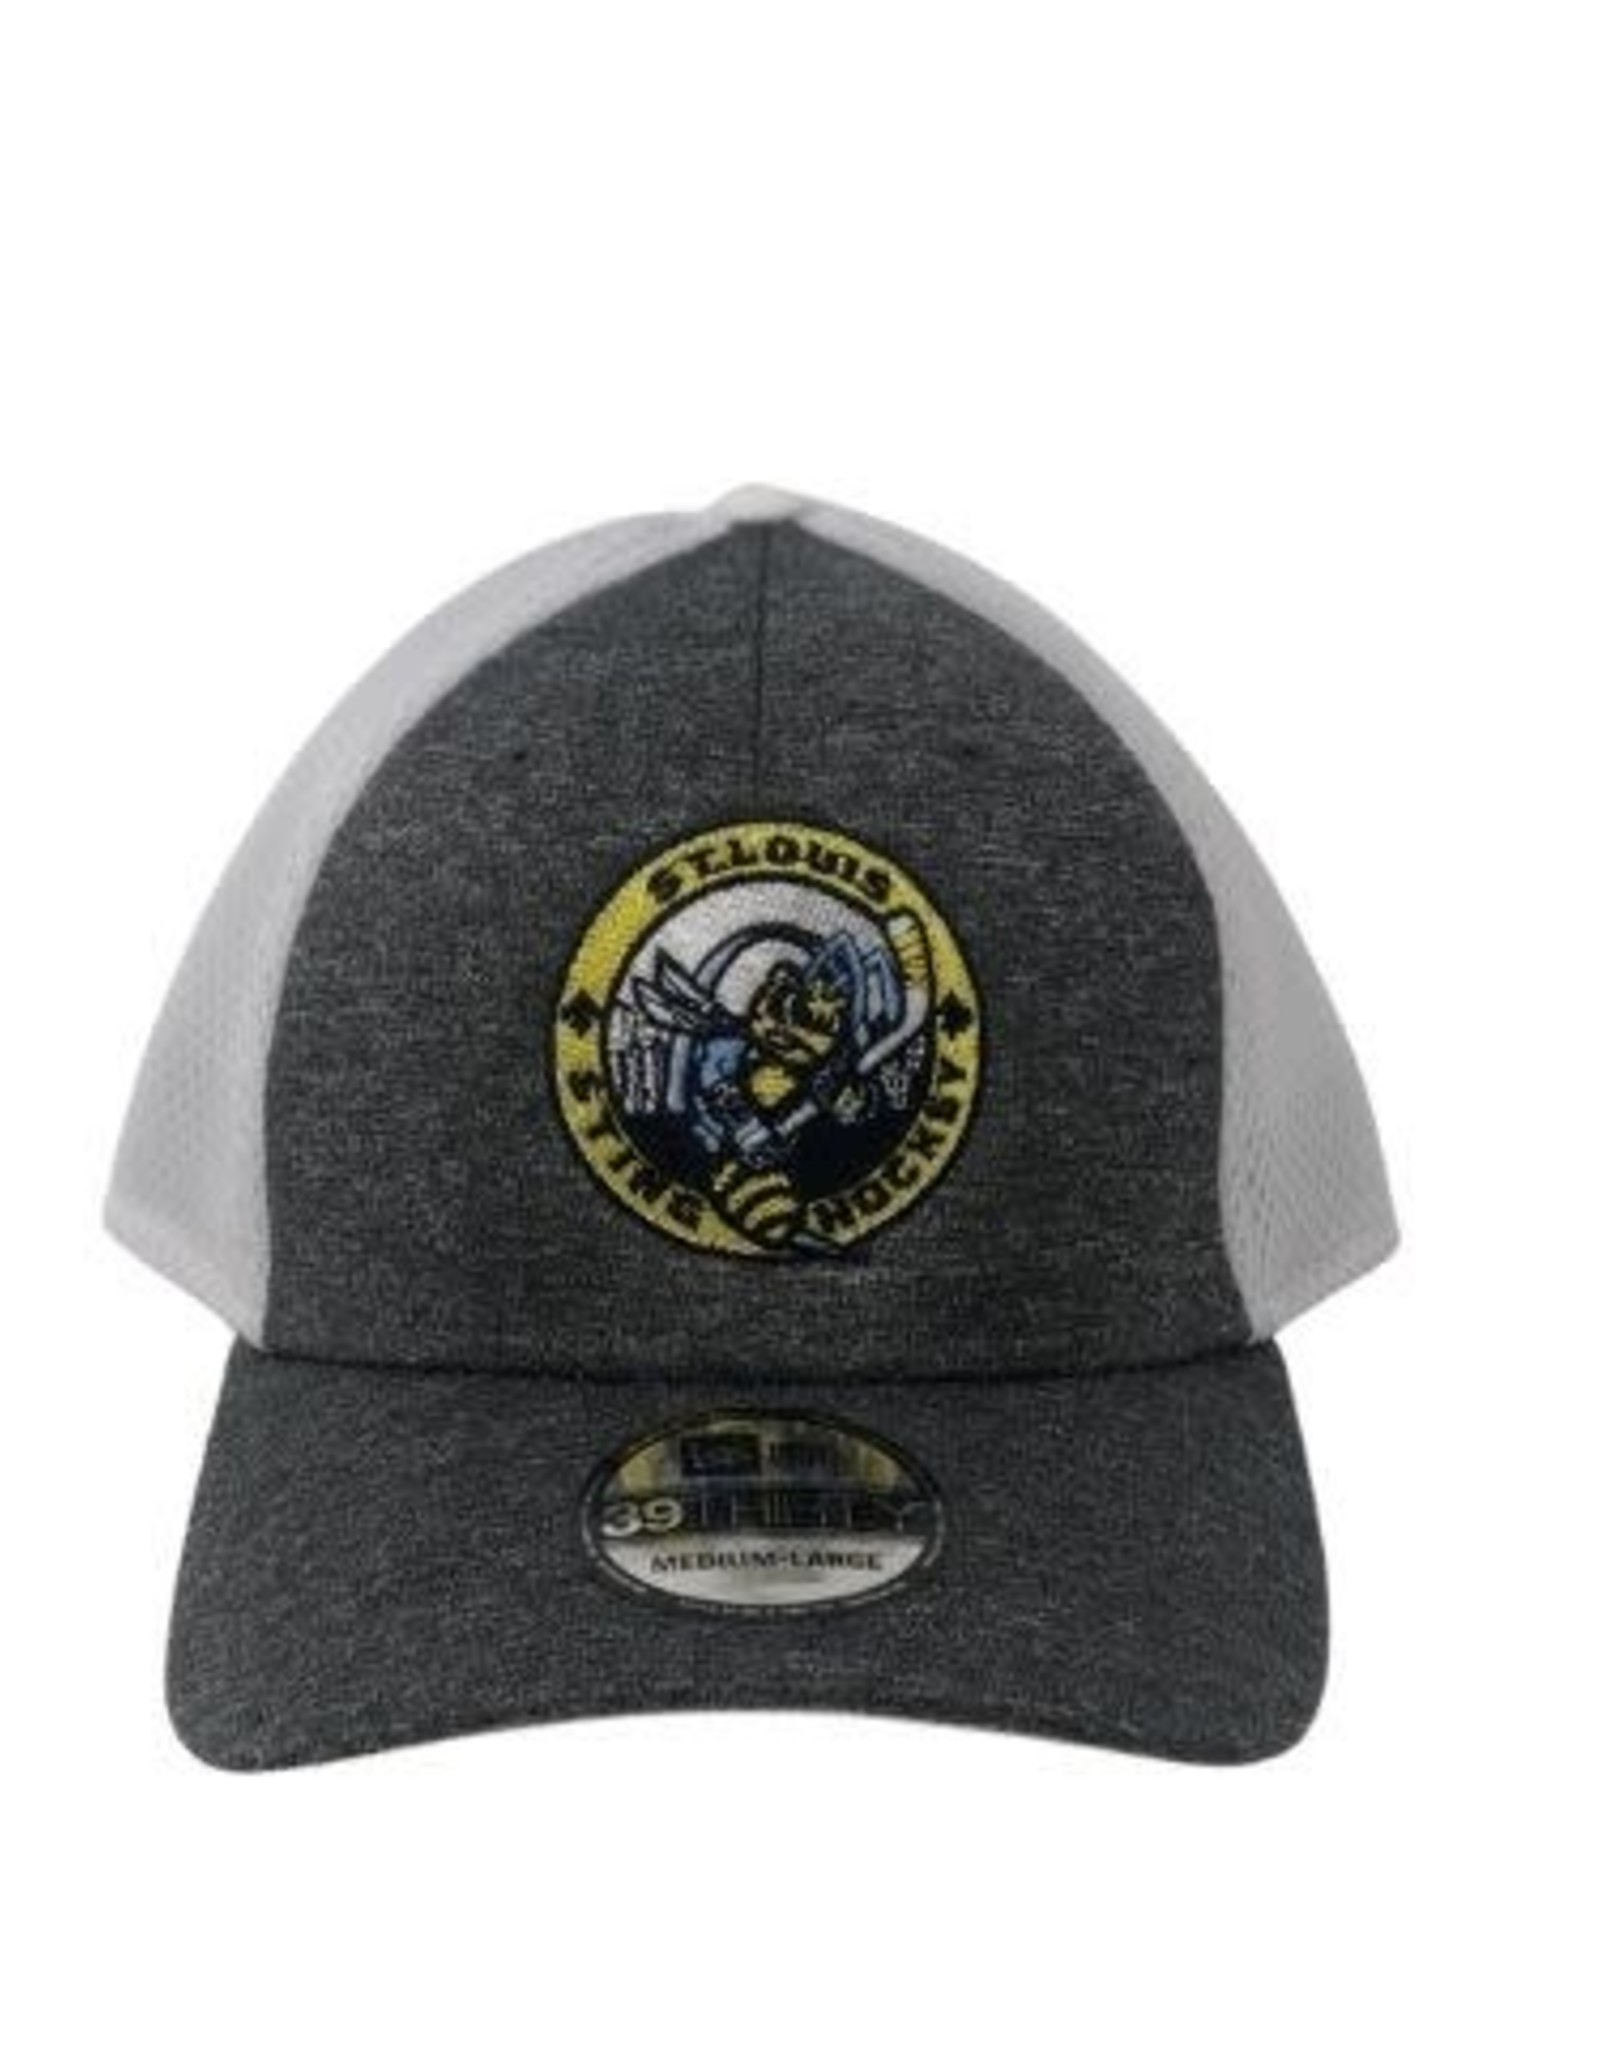 TGP Services Sting Flexfit Hat (Grey/White) Large-XLarge